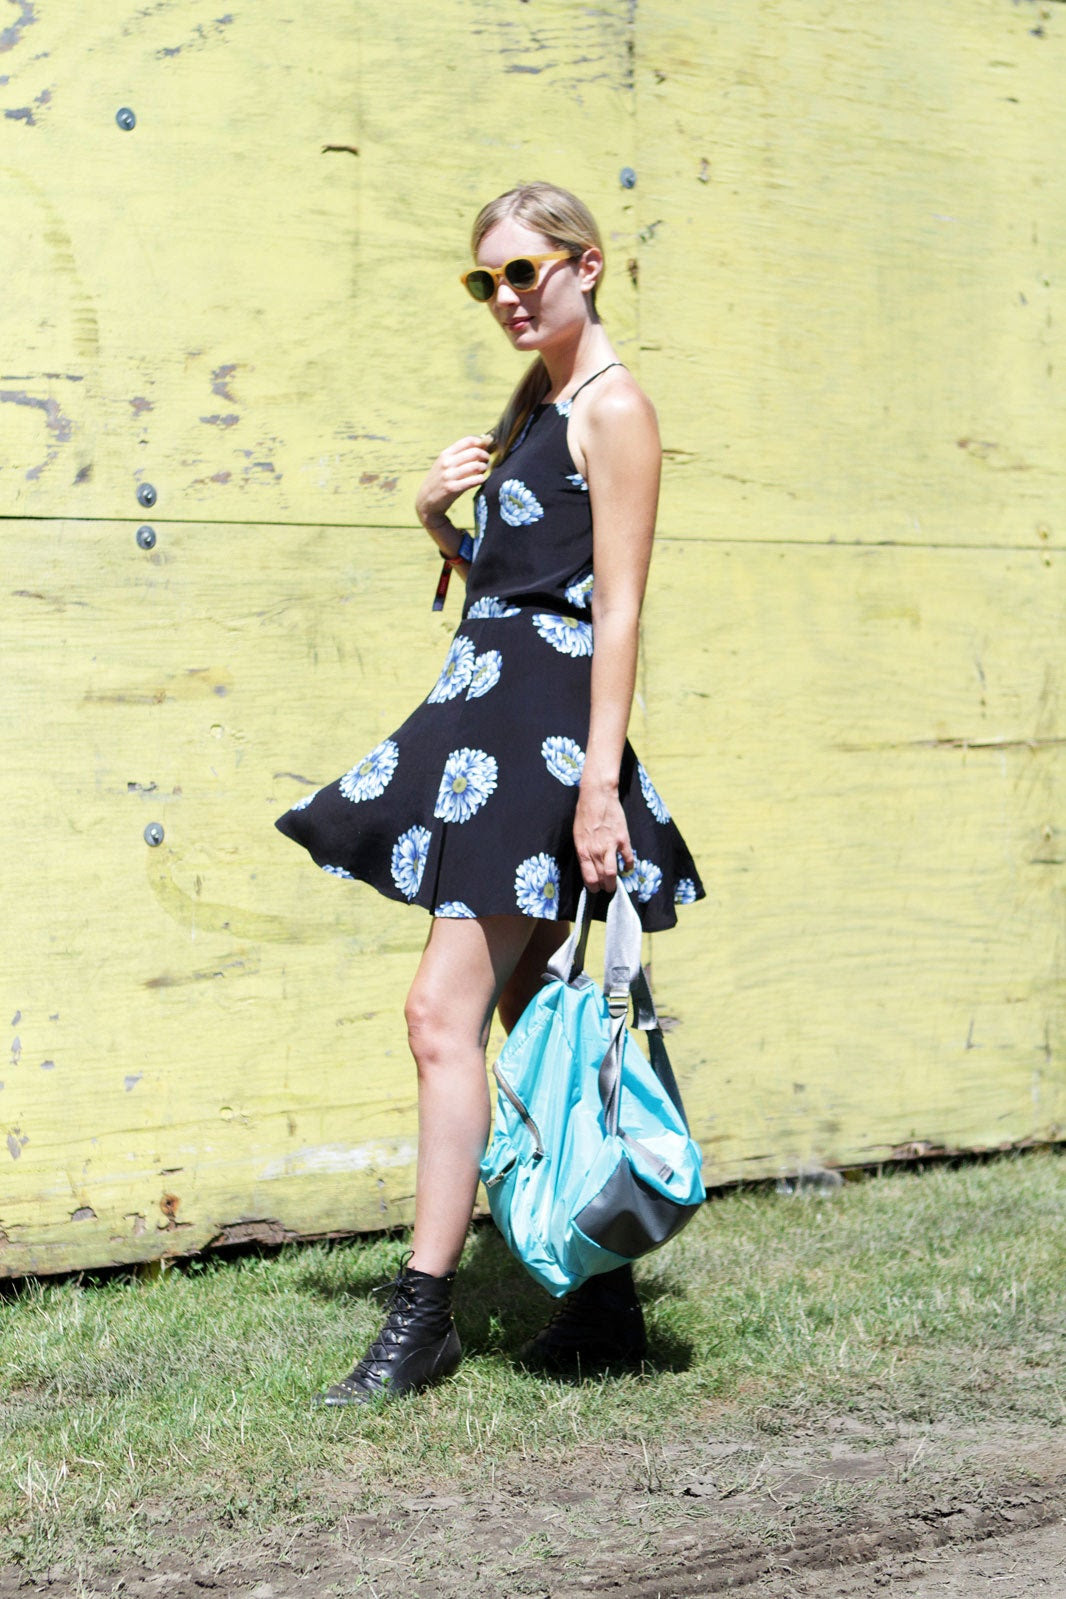 lollapalooza style music festival outfits